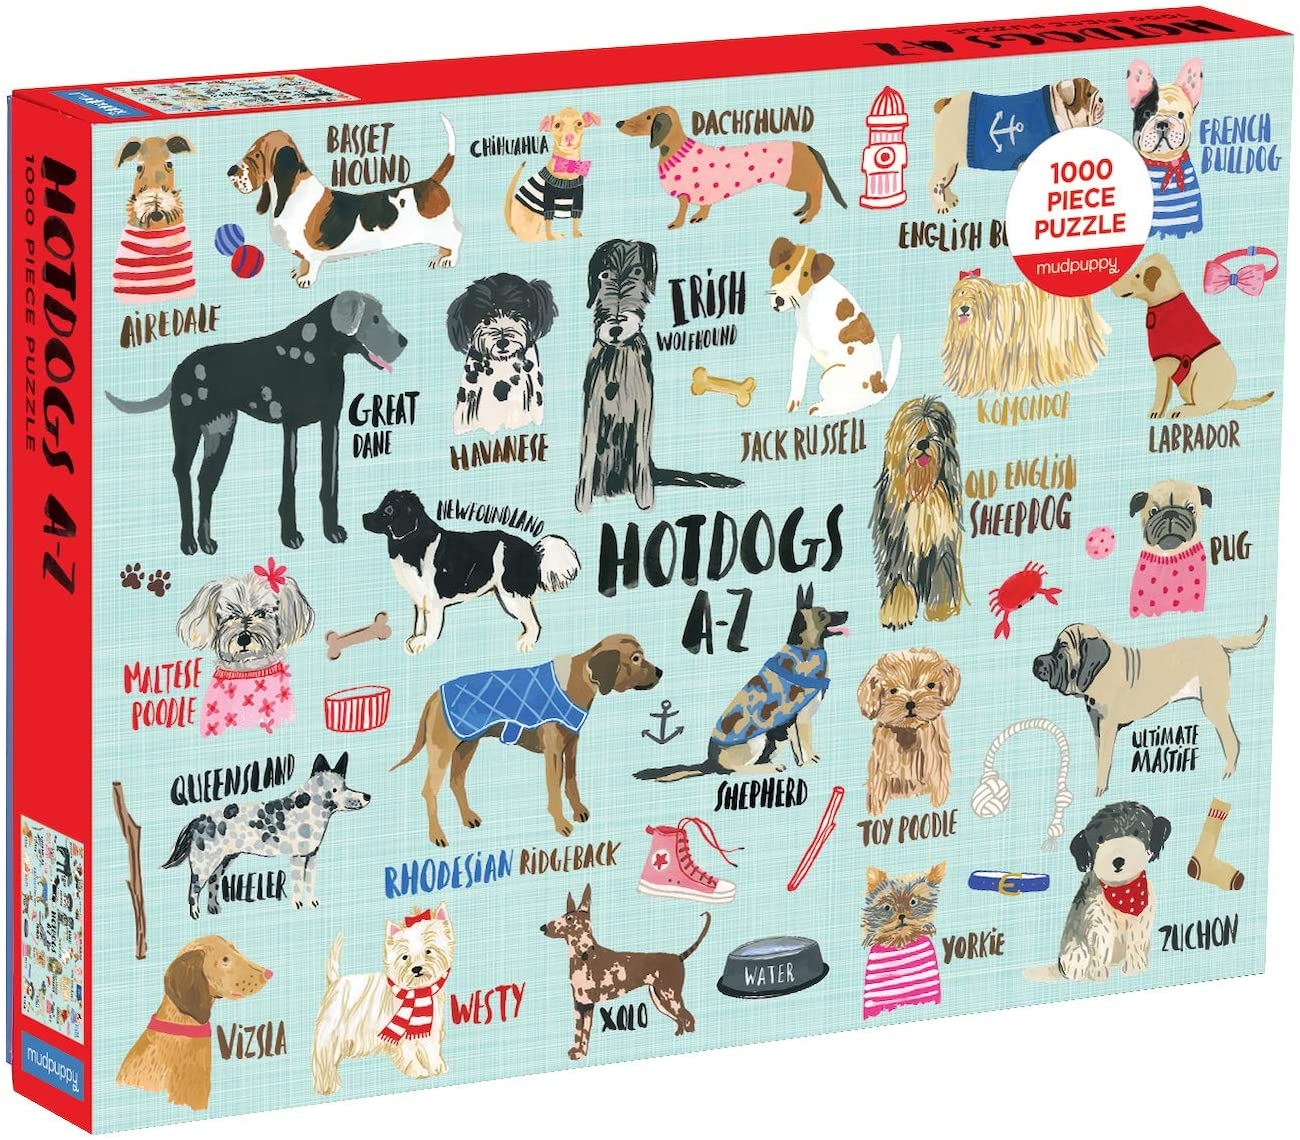 Hot Dogs A-Z, 1000 Piece Puzzle